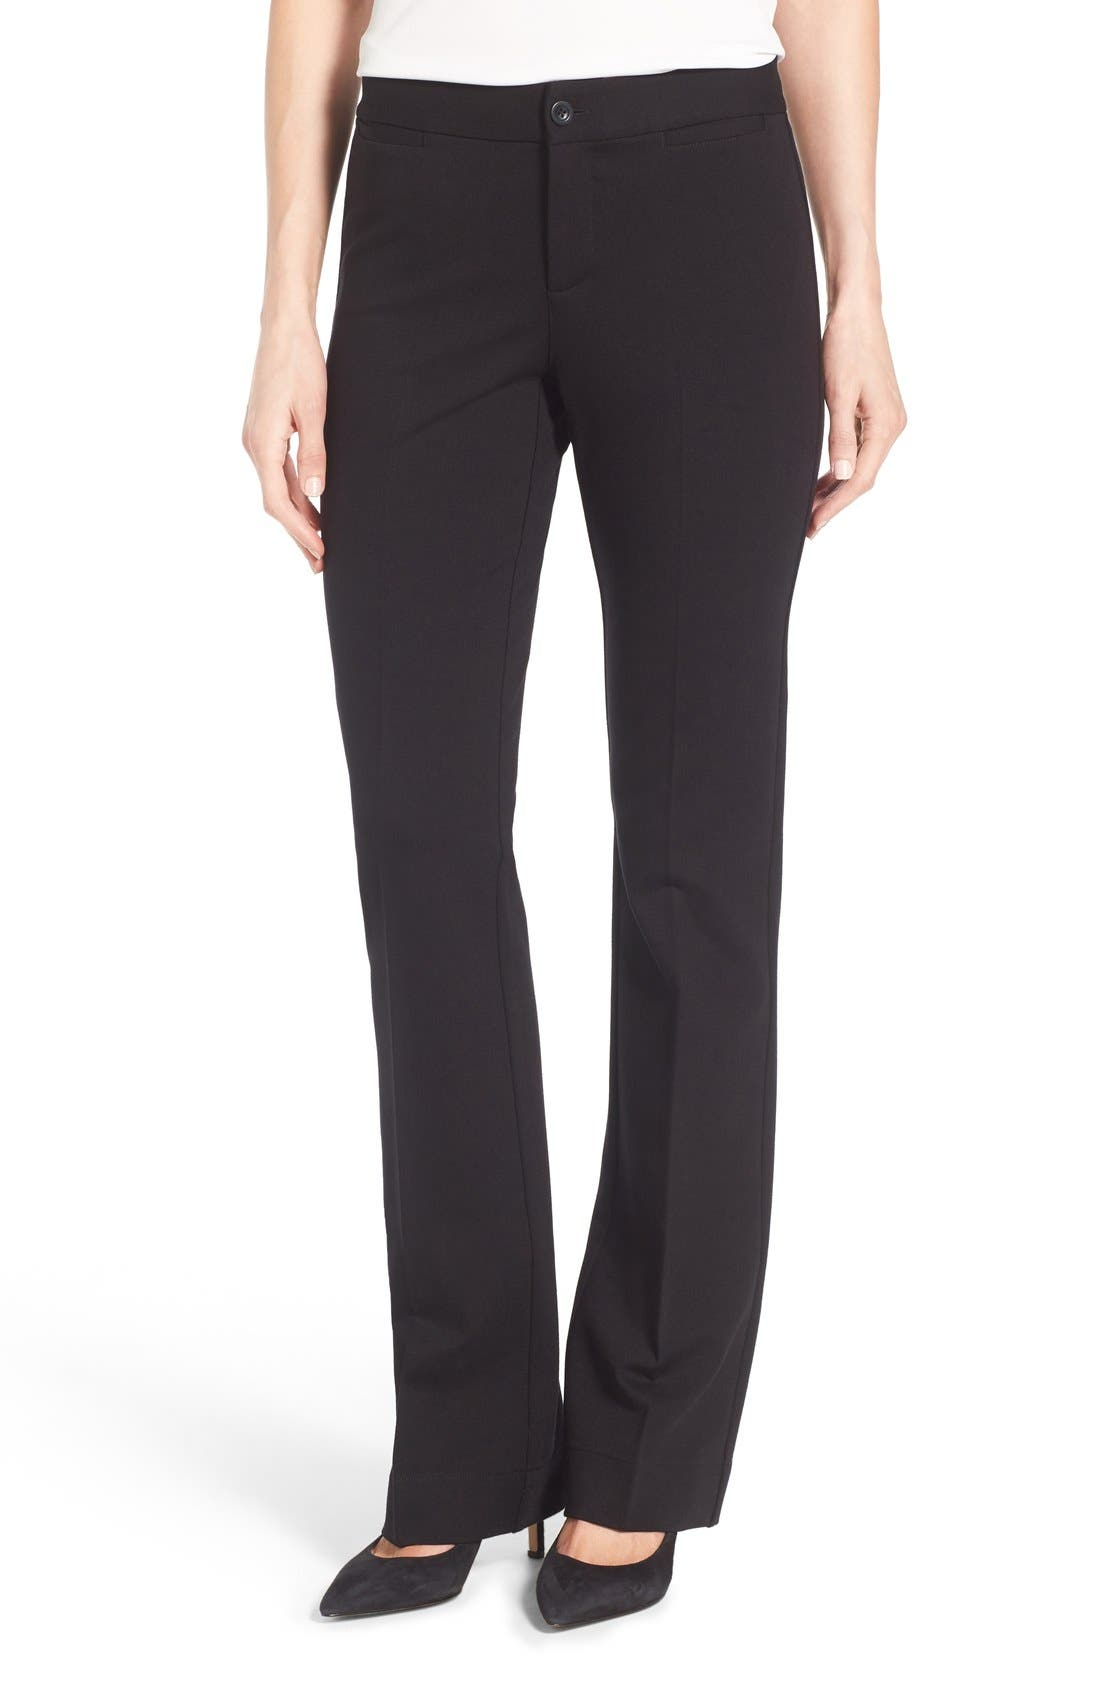 Alternate Image 1 Selected - NYDJ Michelle Stretch Ponte Trousers (Regular & Petite)